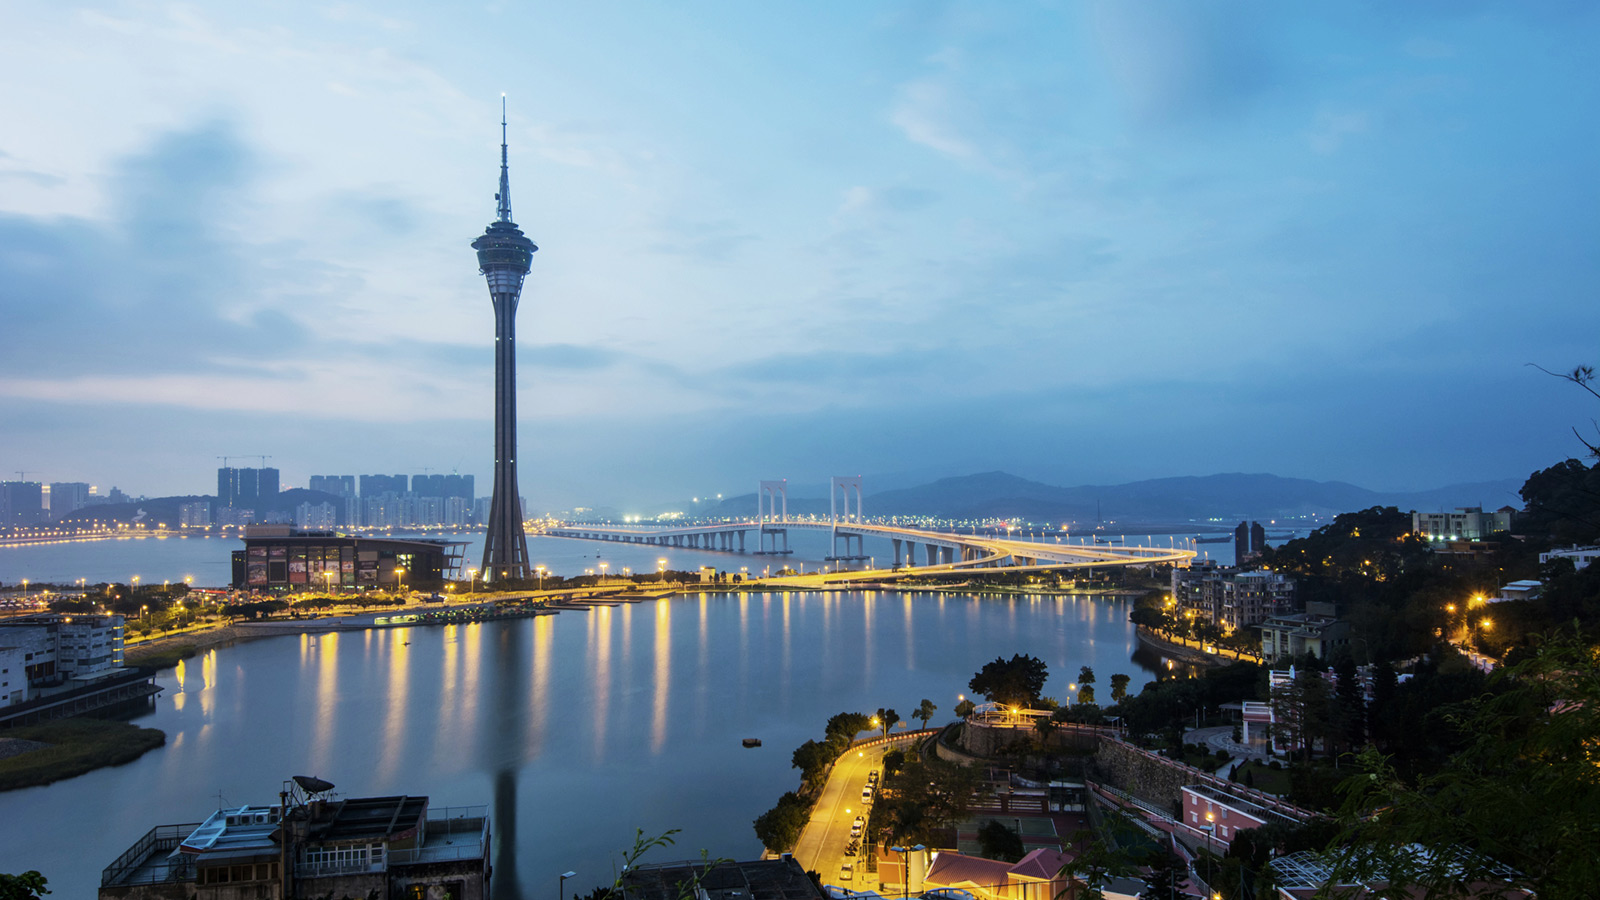 Macau Hotel | Macau Luxury Hotels